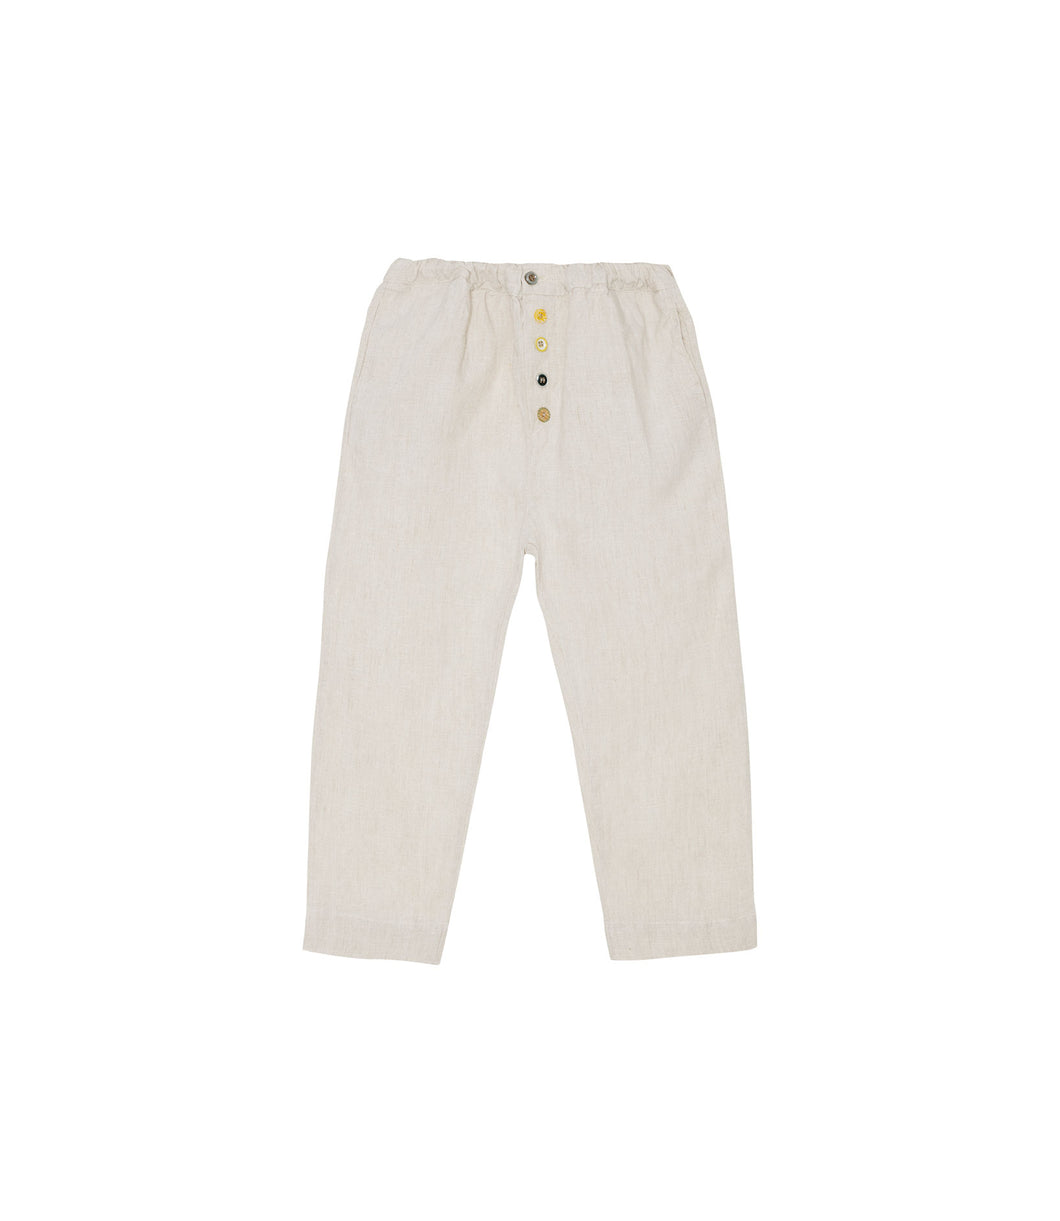 Yellow Pelota Laka Pants - Natural 3Y, 4Y, 6y